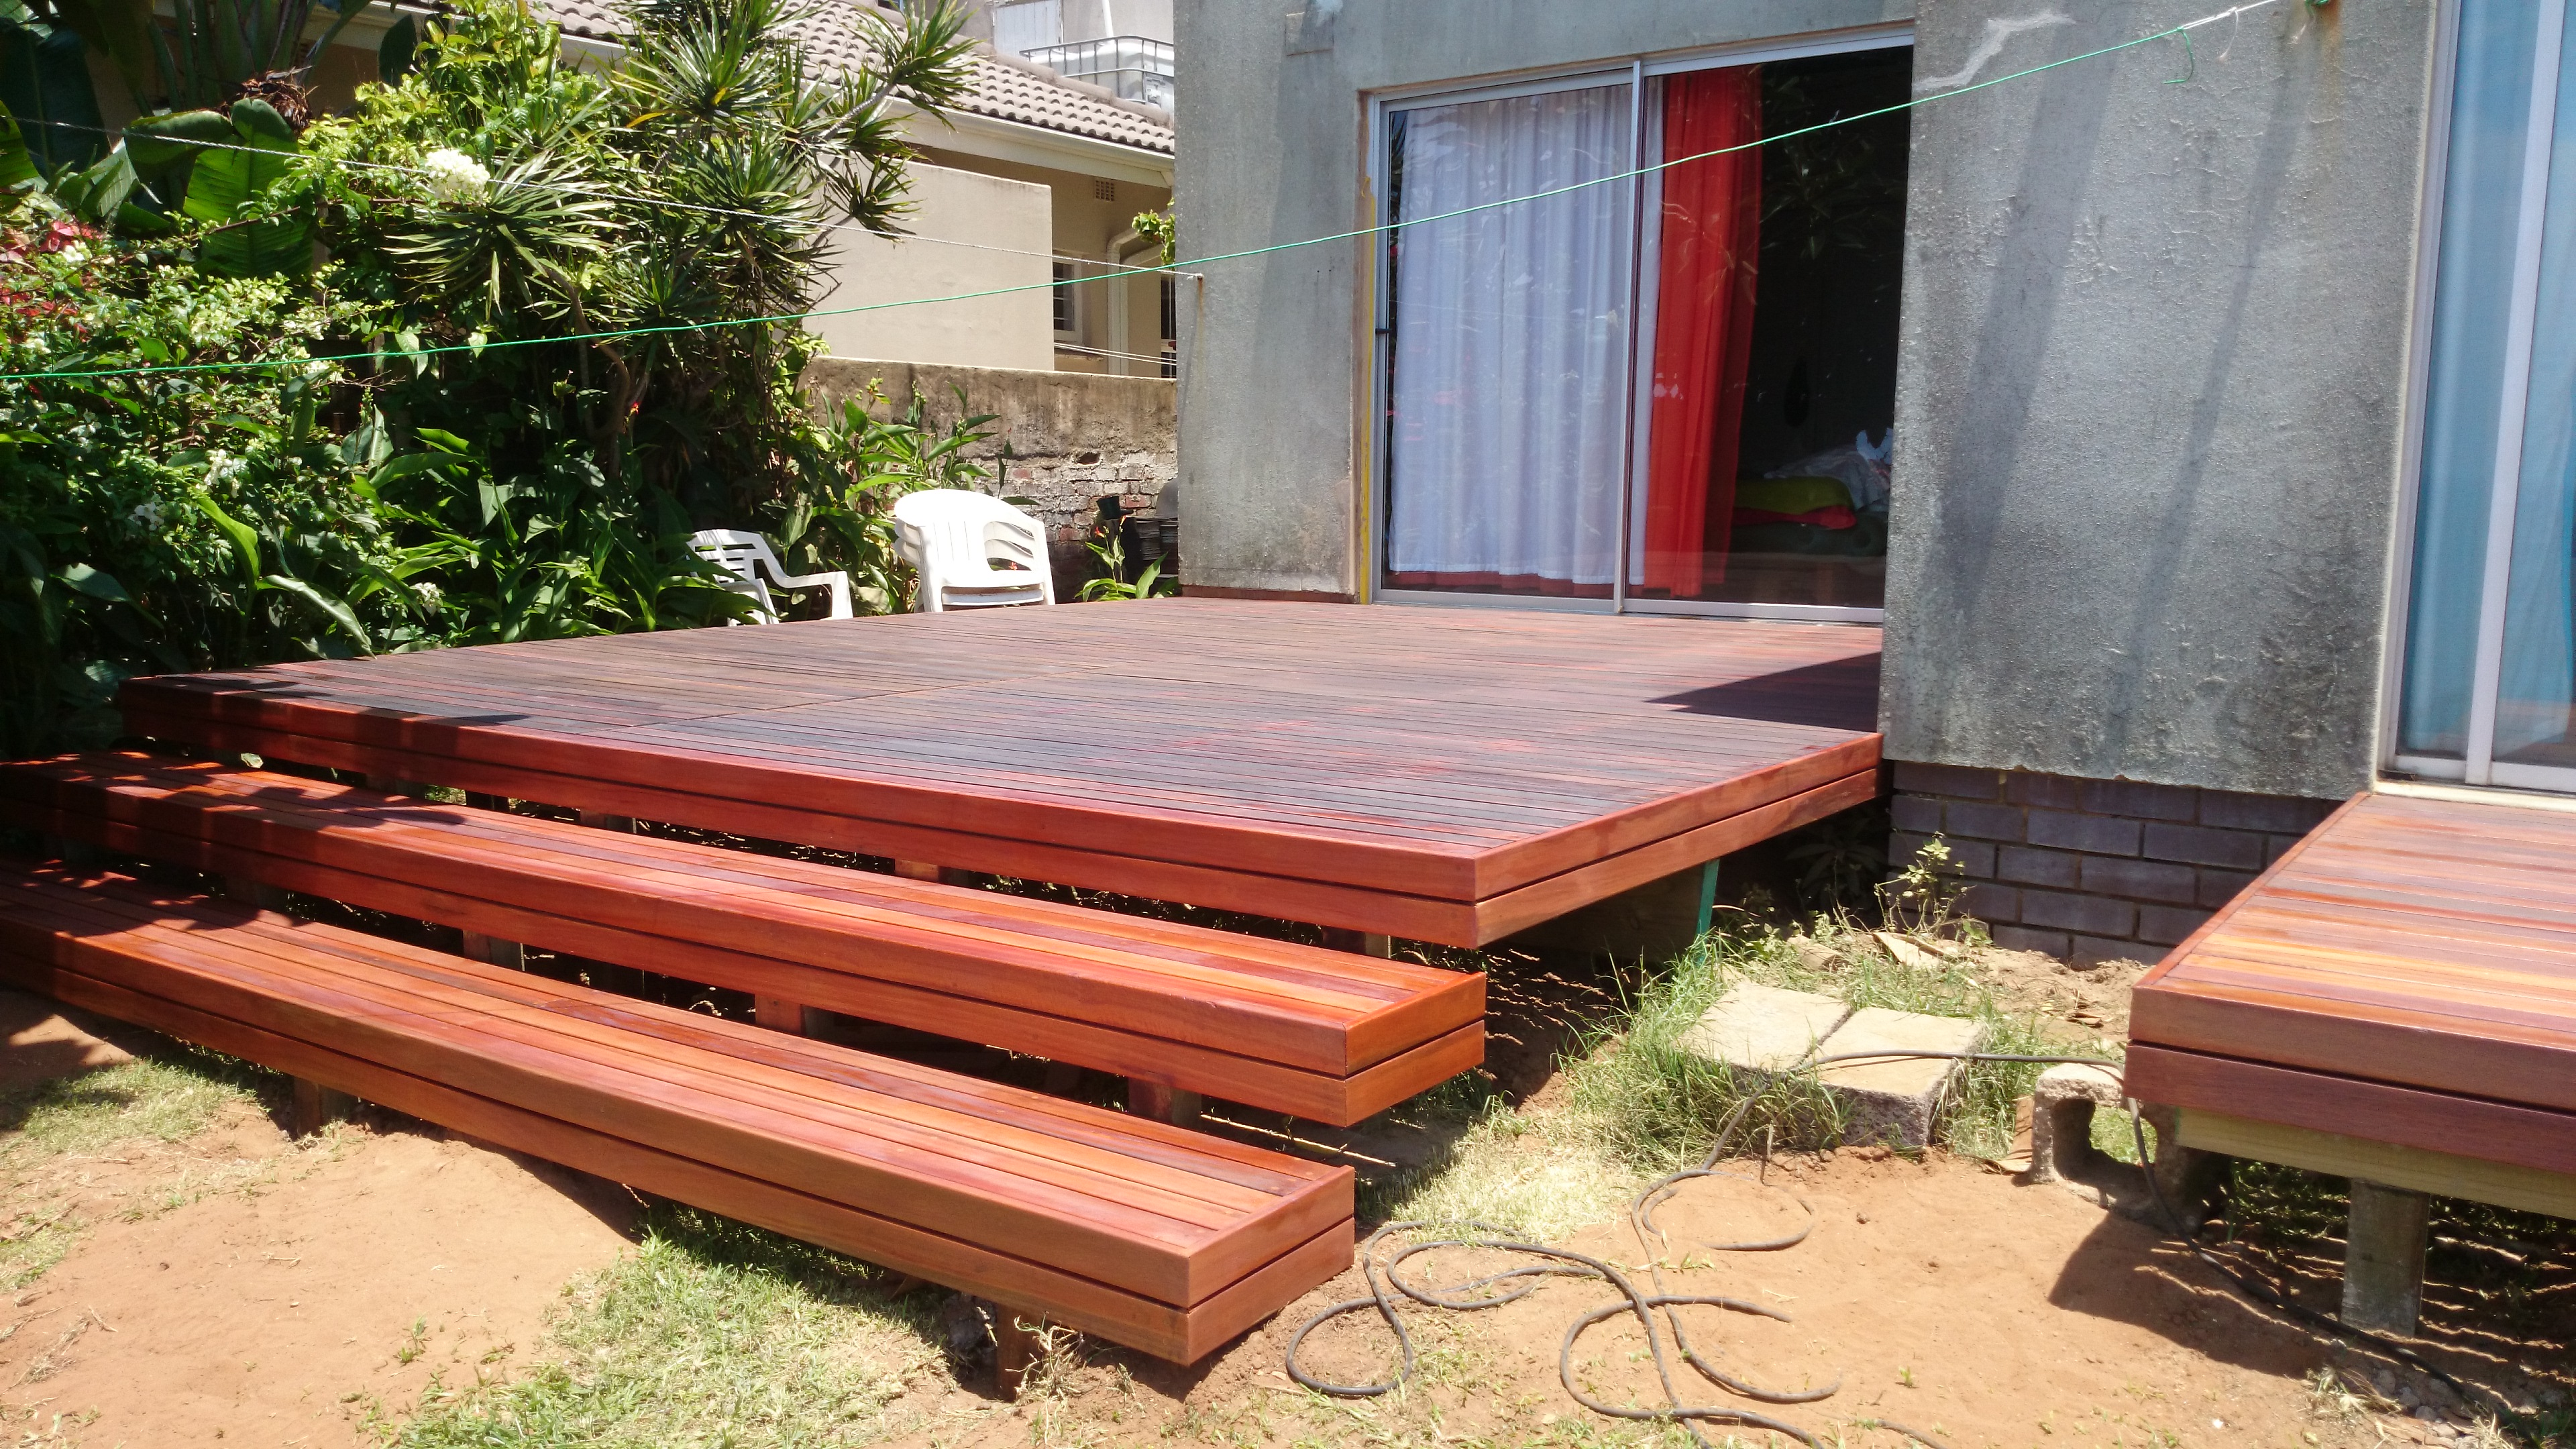 ... decks Durban – Bluff | The Wood Joint - Wooden Decks and Floors